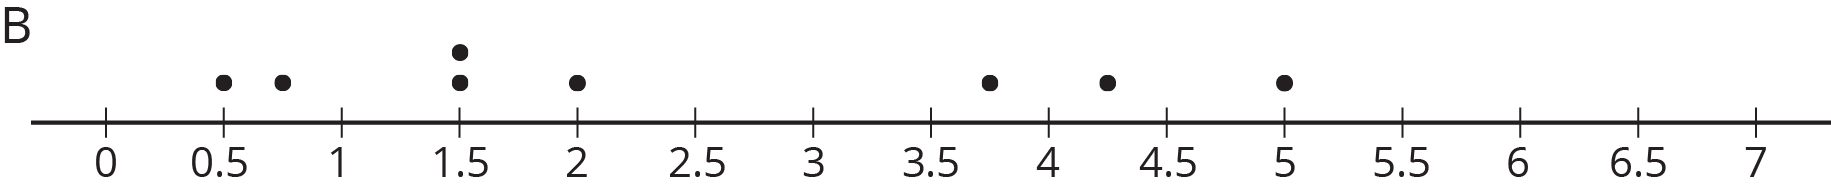 "A dot plot labeled ""B."" The numbers 0 through 7, in increments of 0 point 5, are indicated. The data are as follows:  0 point 5, 1 dot. 0 point 7 5, 1 dot. 1 point 5, 2 dots. 2, 1 dot. 3 point 7 5, 1 dot. 4 point 2 5, 1 dot. 5, 1 dot."